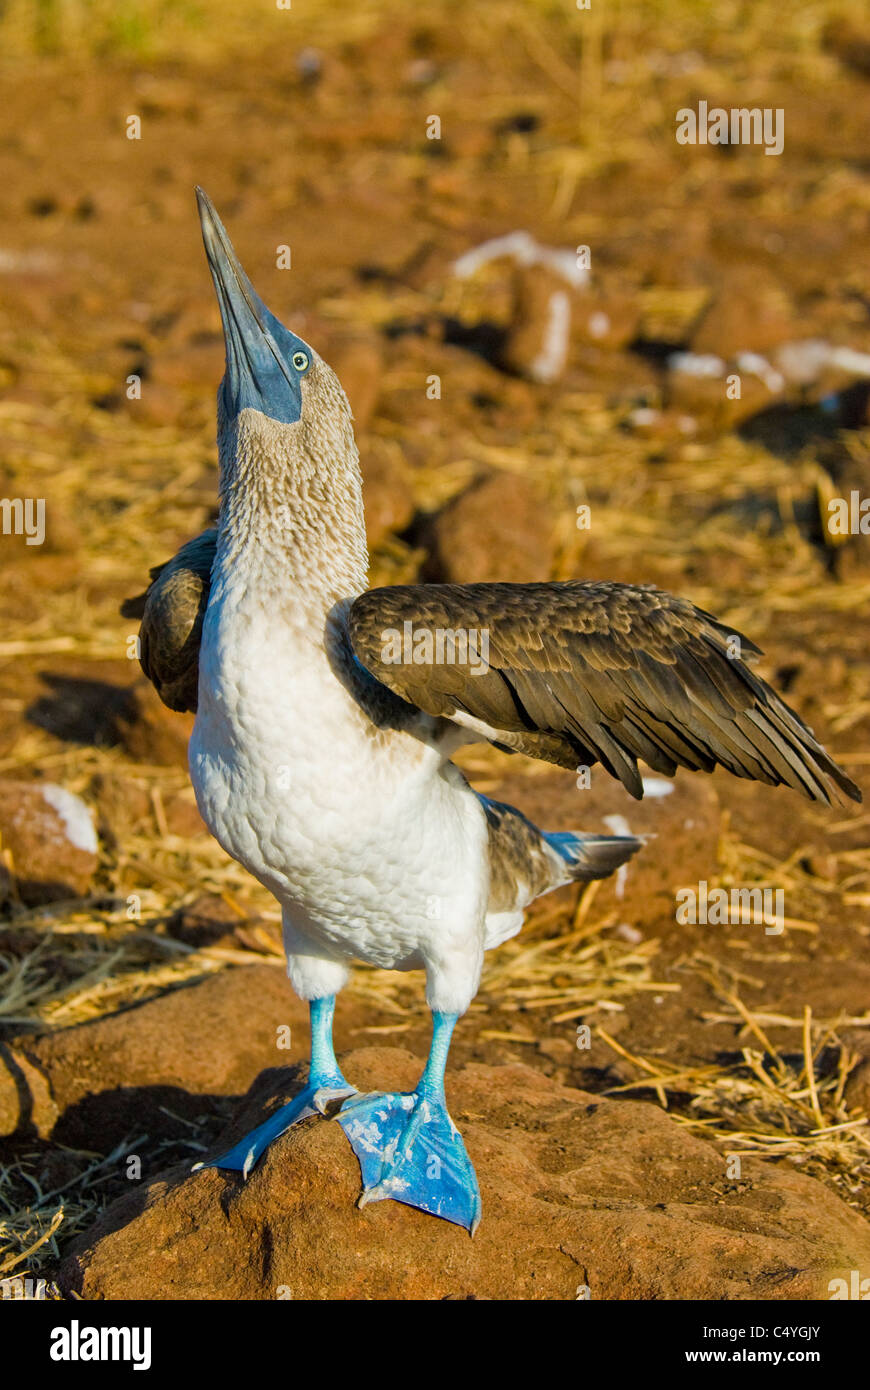 Blue-footed booby (Sula nebouxii) courtship behavior on Seymour Island in the Galapagos Islands Ecuador - Stock Image